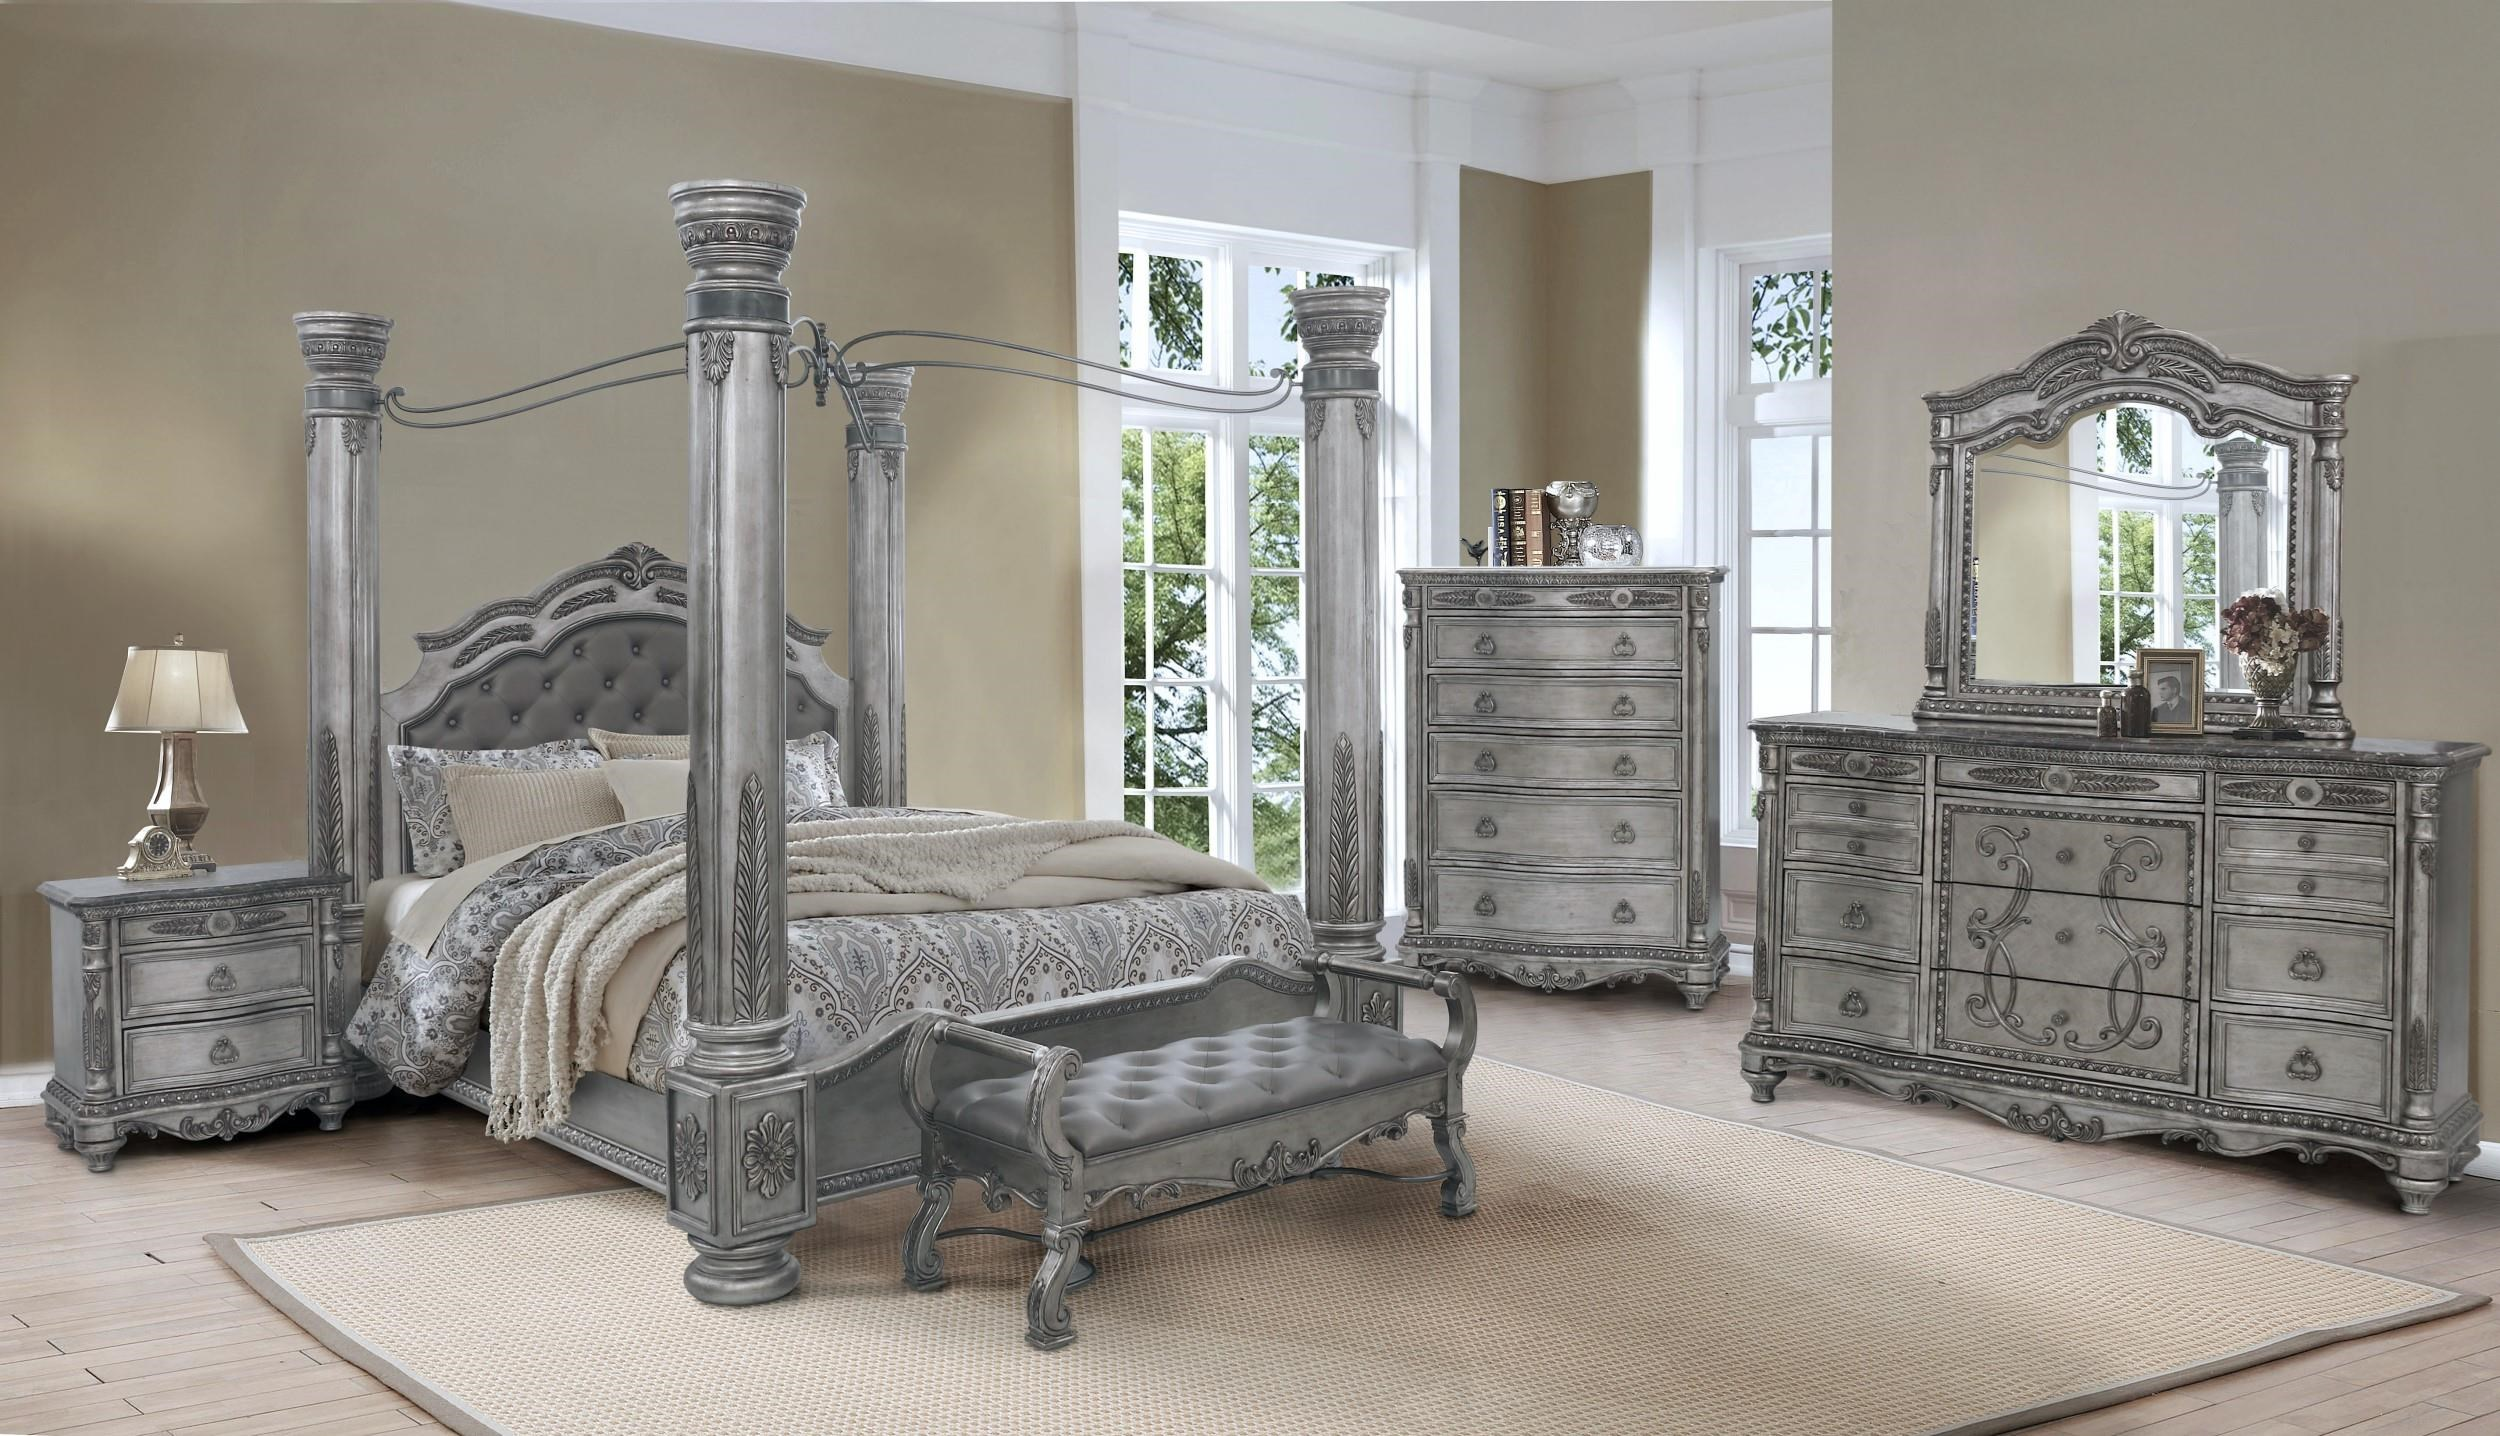 King Canopy Bed, Dresser and Mirror